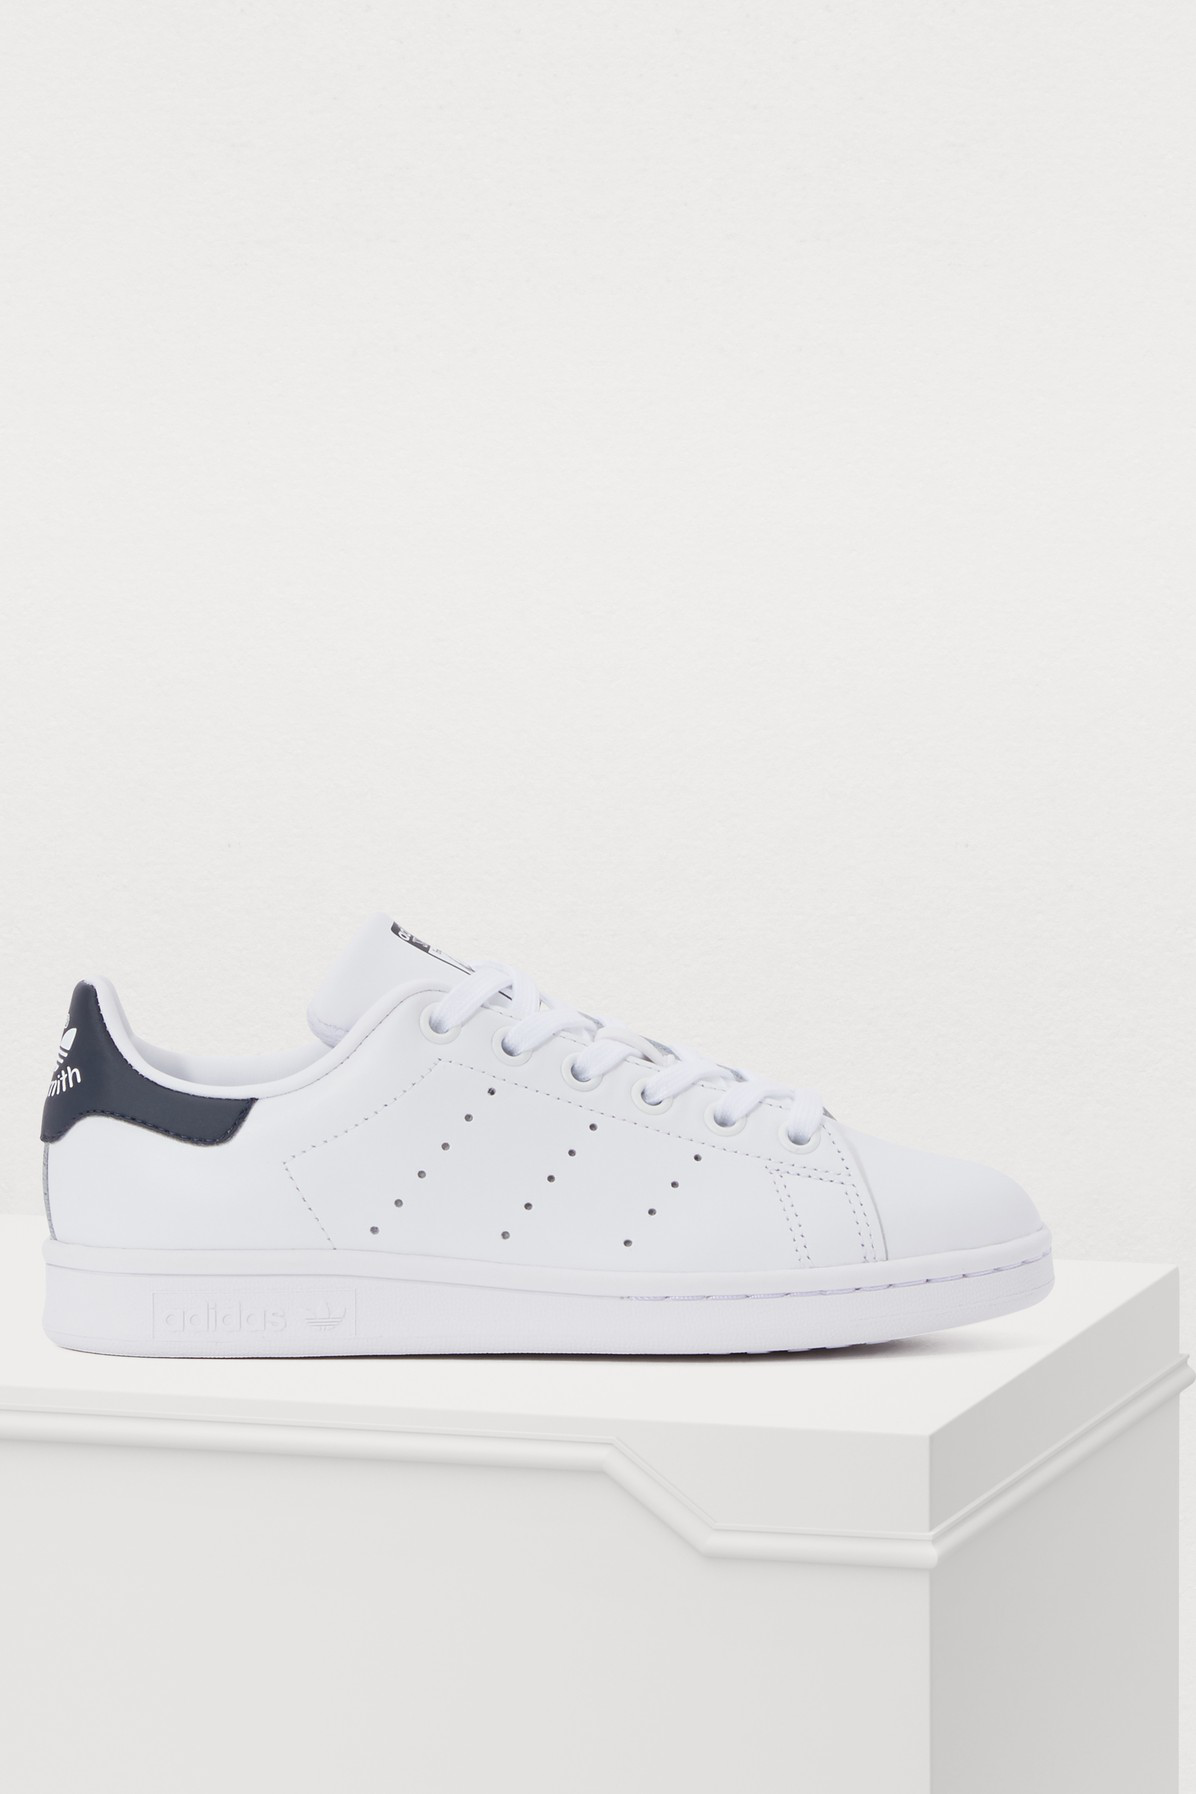 b407fe782821 Adidas Originals White And Navy Stan Smith Sneakers - White